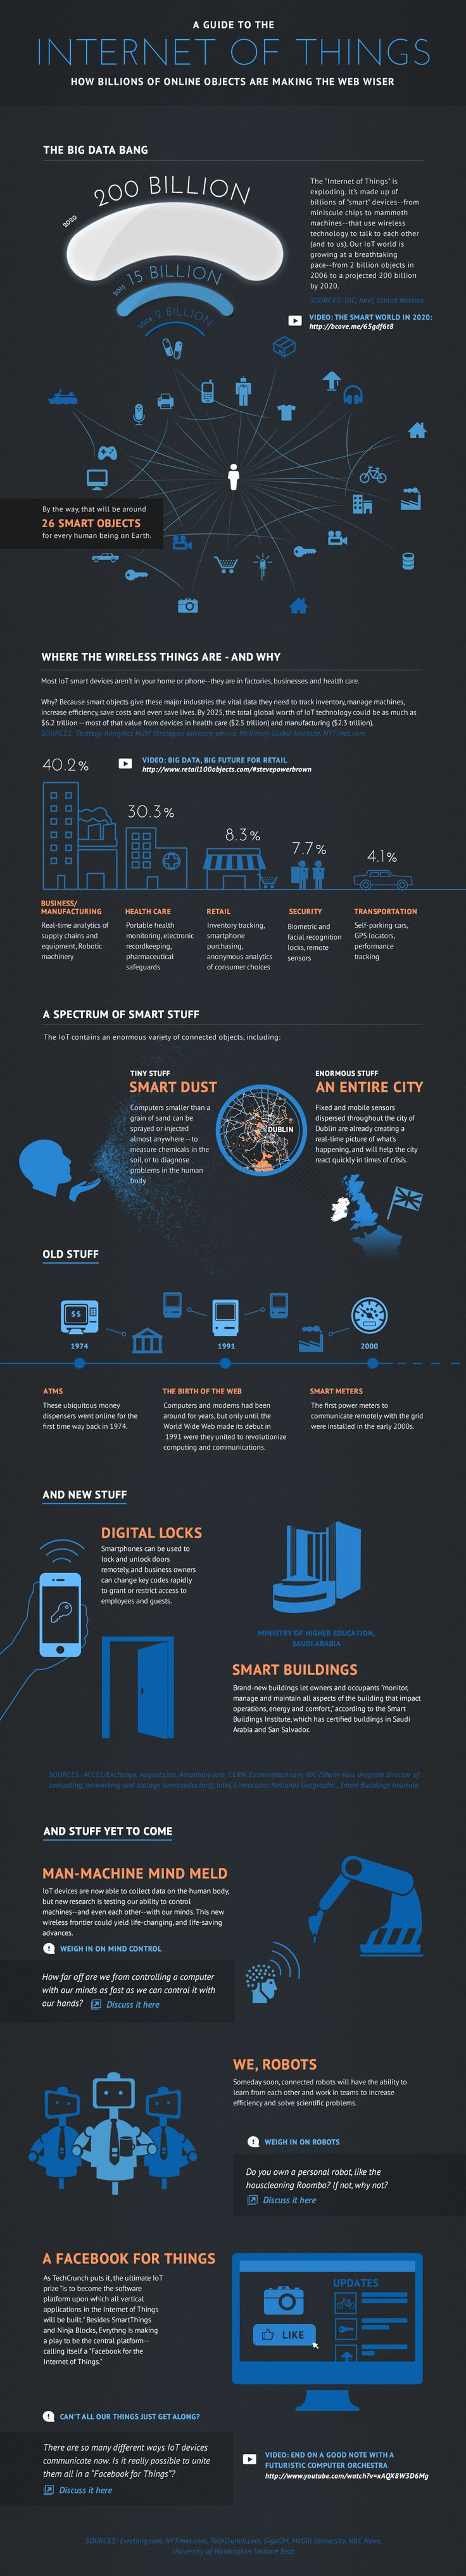 Infographic: Guide to The Internet of Things - Billions of online objects are making the Web wiser; learn what it... | The IoT Cloud - Internet of Things News